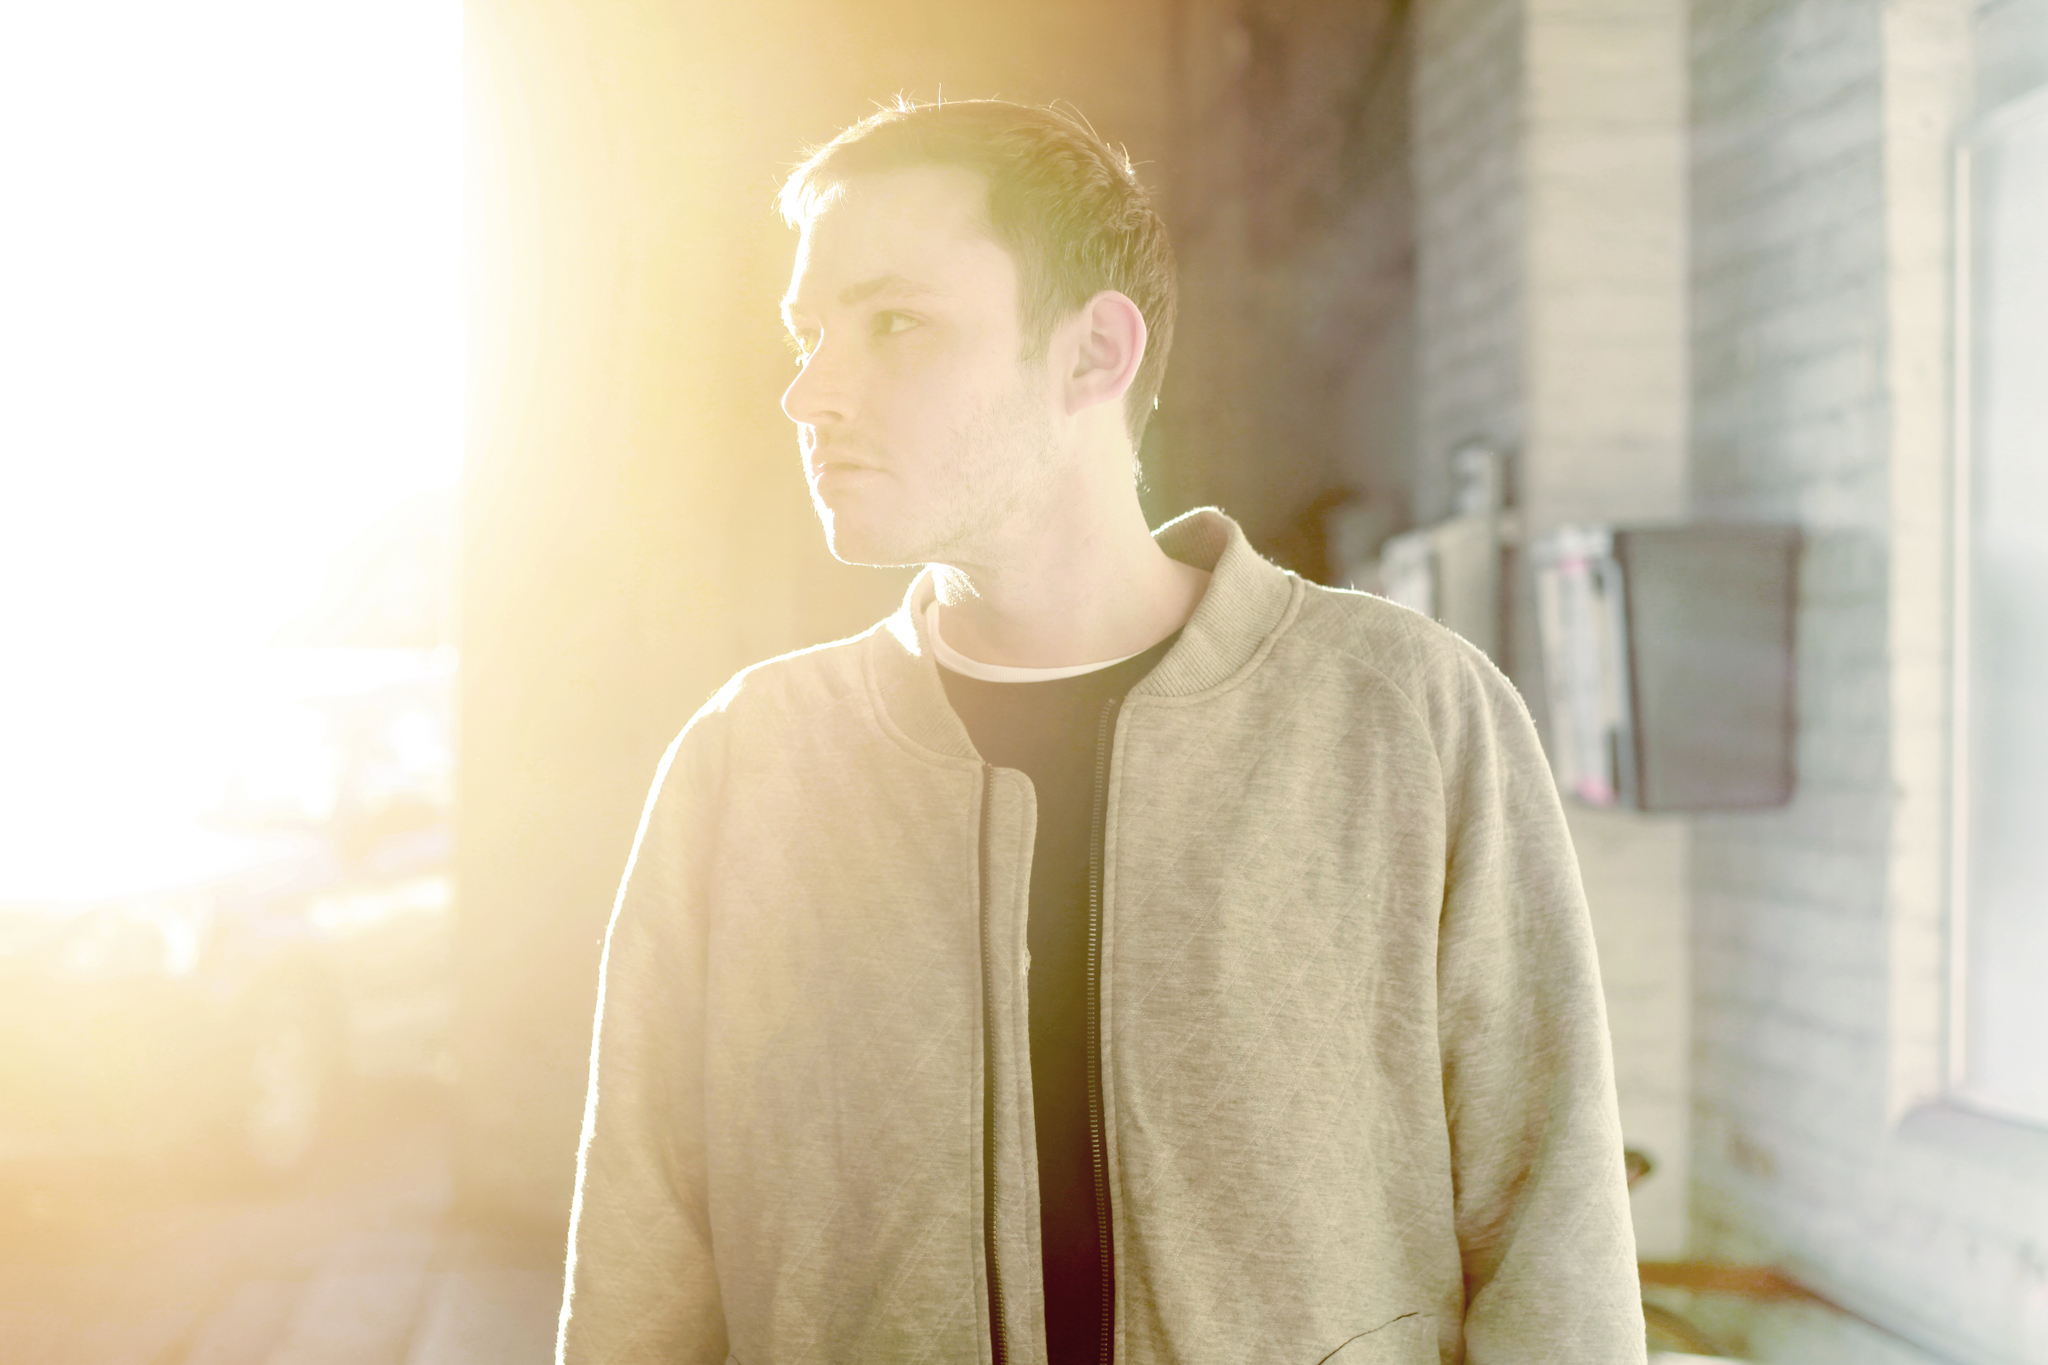 Hudson Mohawke talks Kanye, getting papped and his new solo record